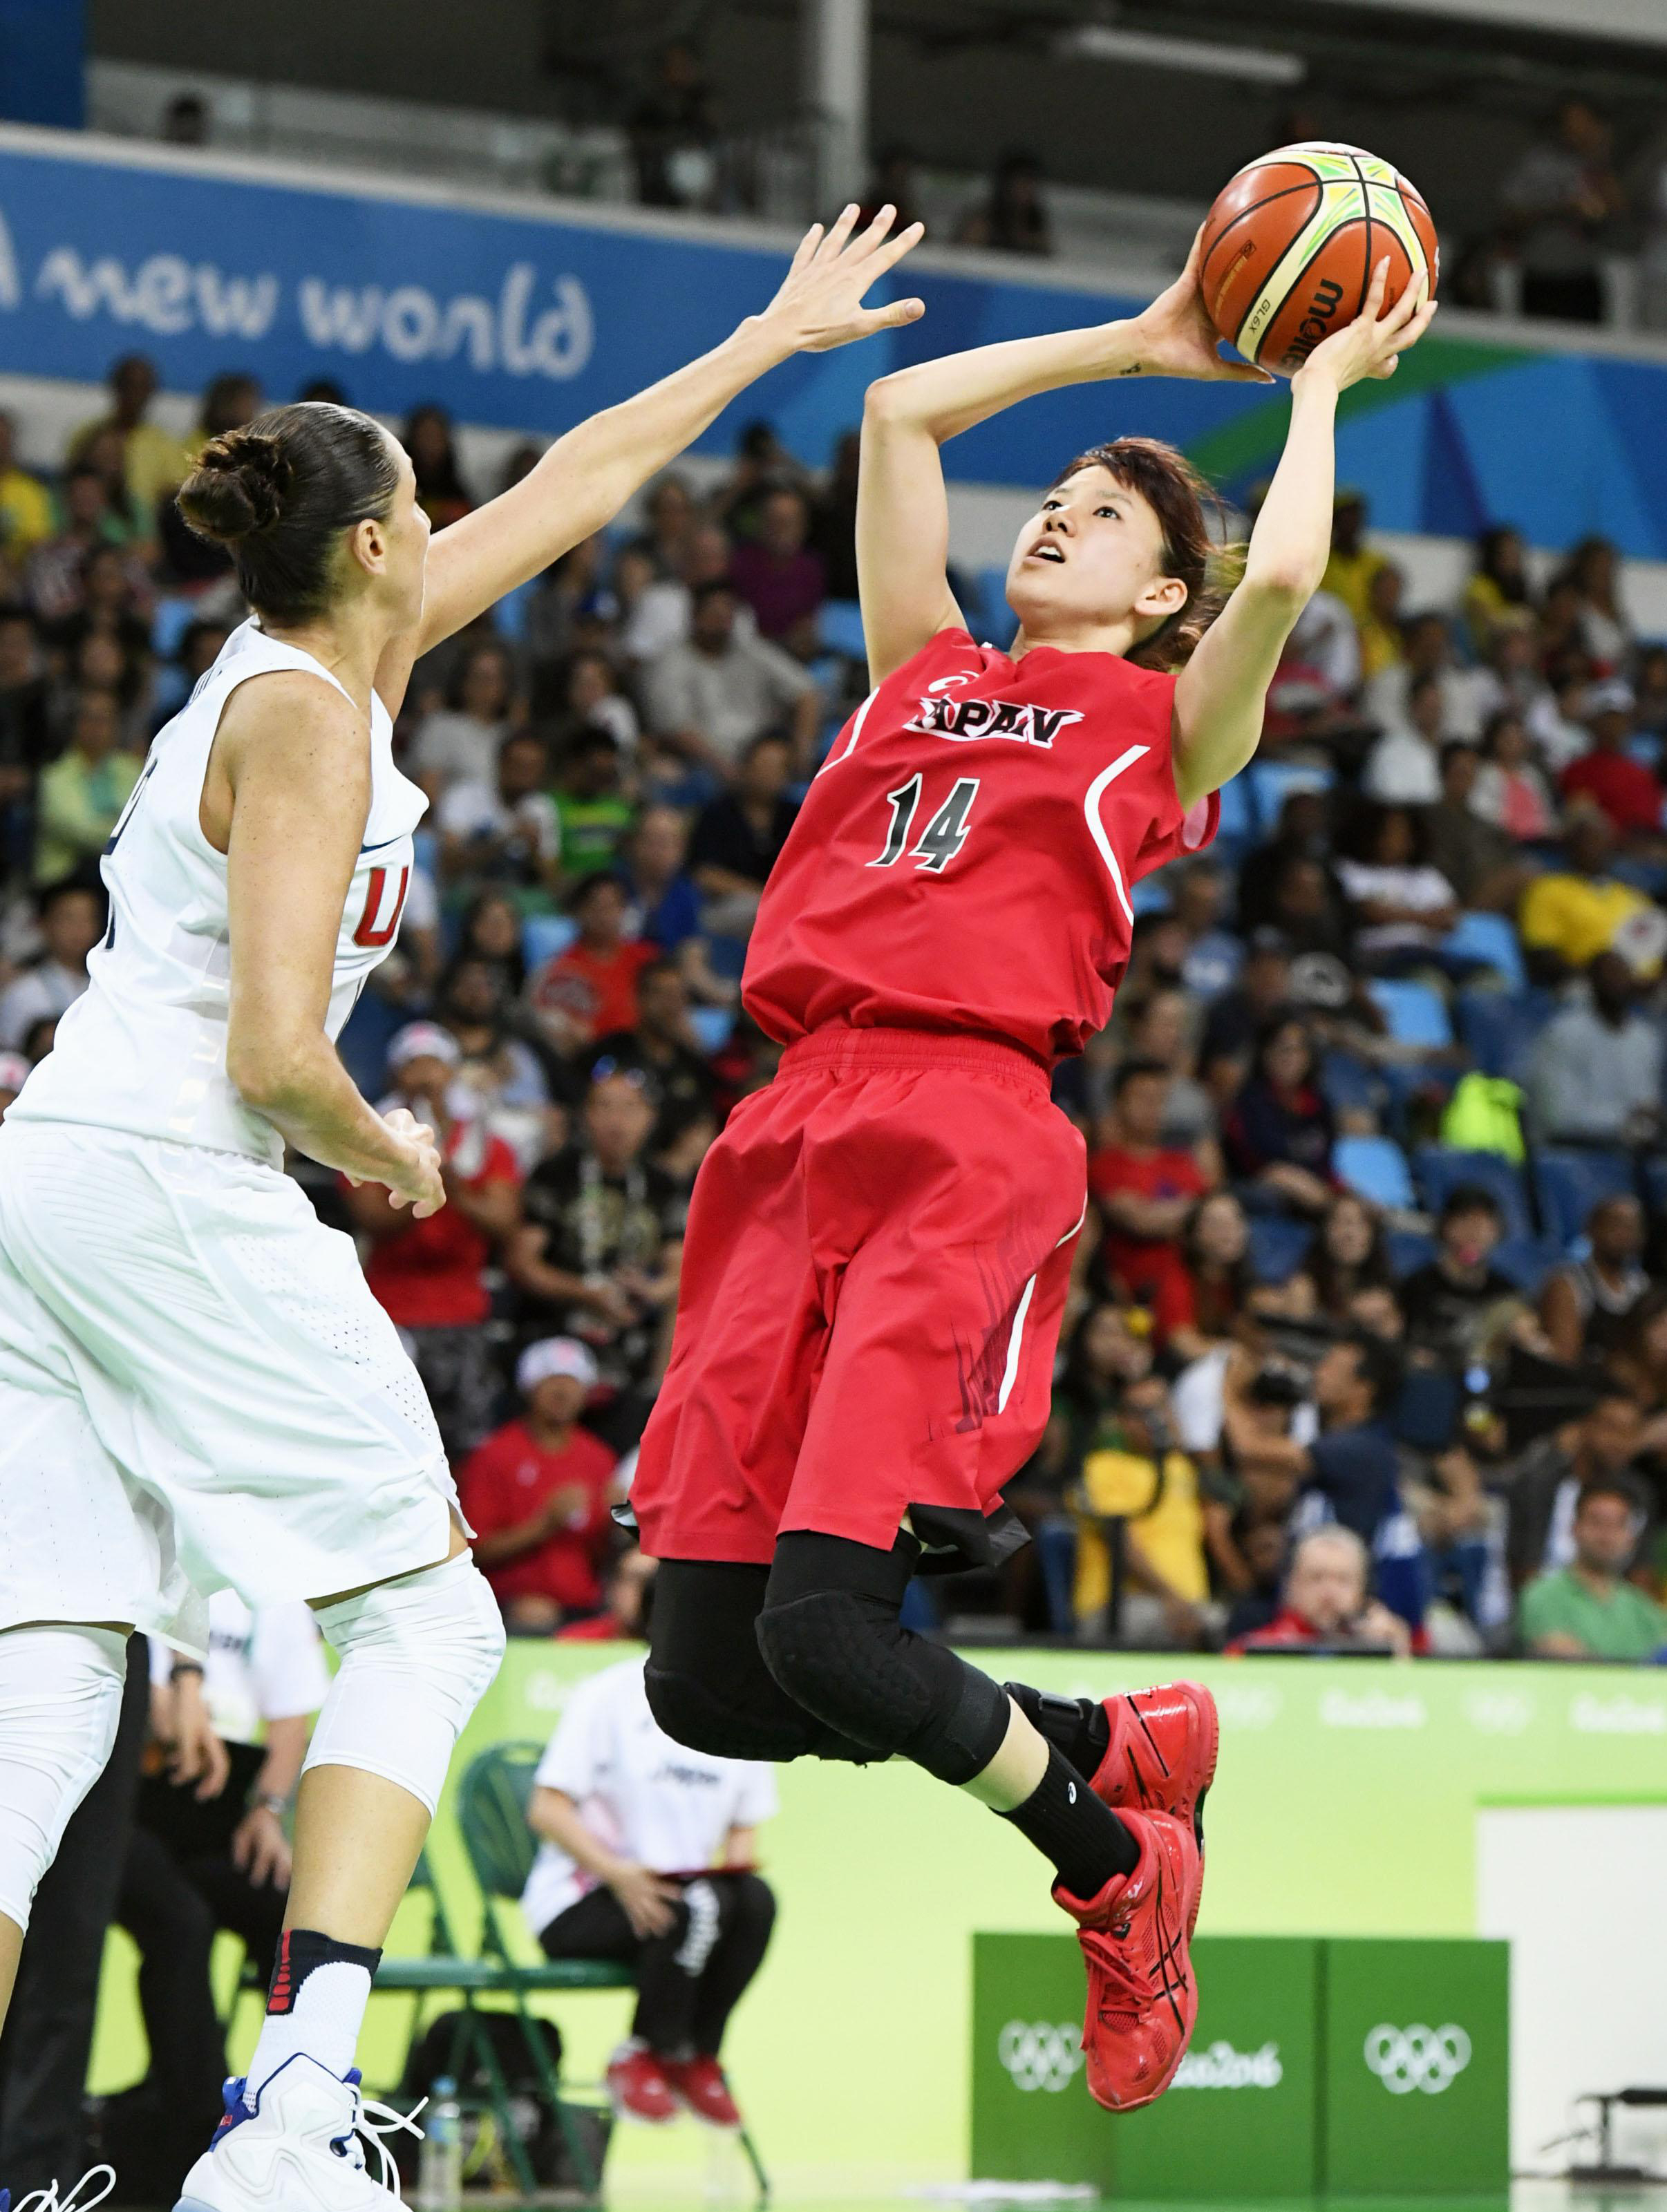 Sanae Motokawa shoots during the women's basketball quarterfinal game against the United States on Tuesday at the 2016 Rio Games. The U.S. won 110-64. |   KYODO